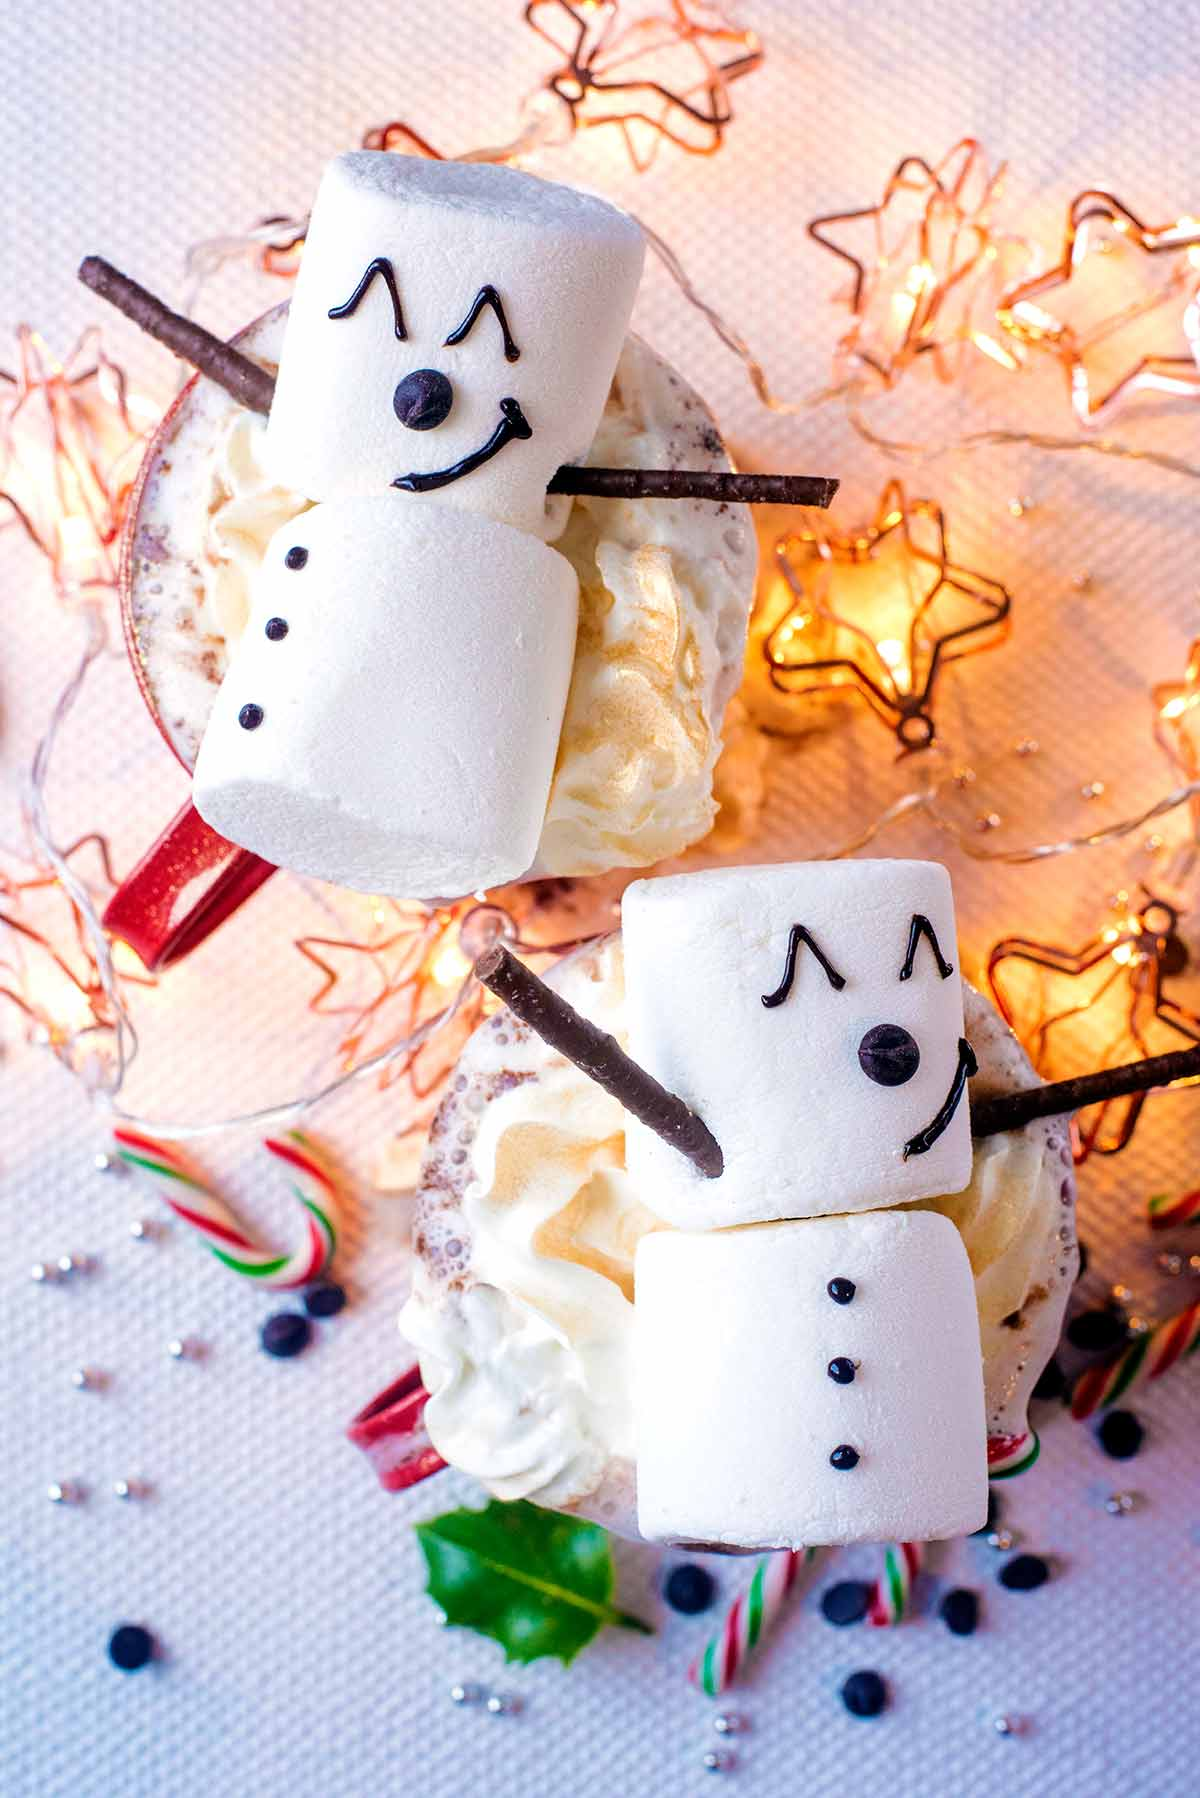 Marshmallows decorated like snowmen on top of mugs of hot chocolate.